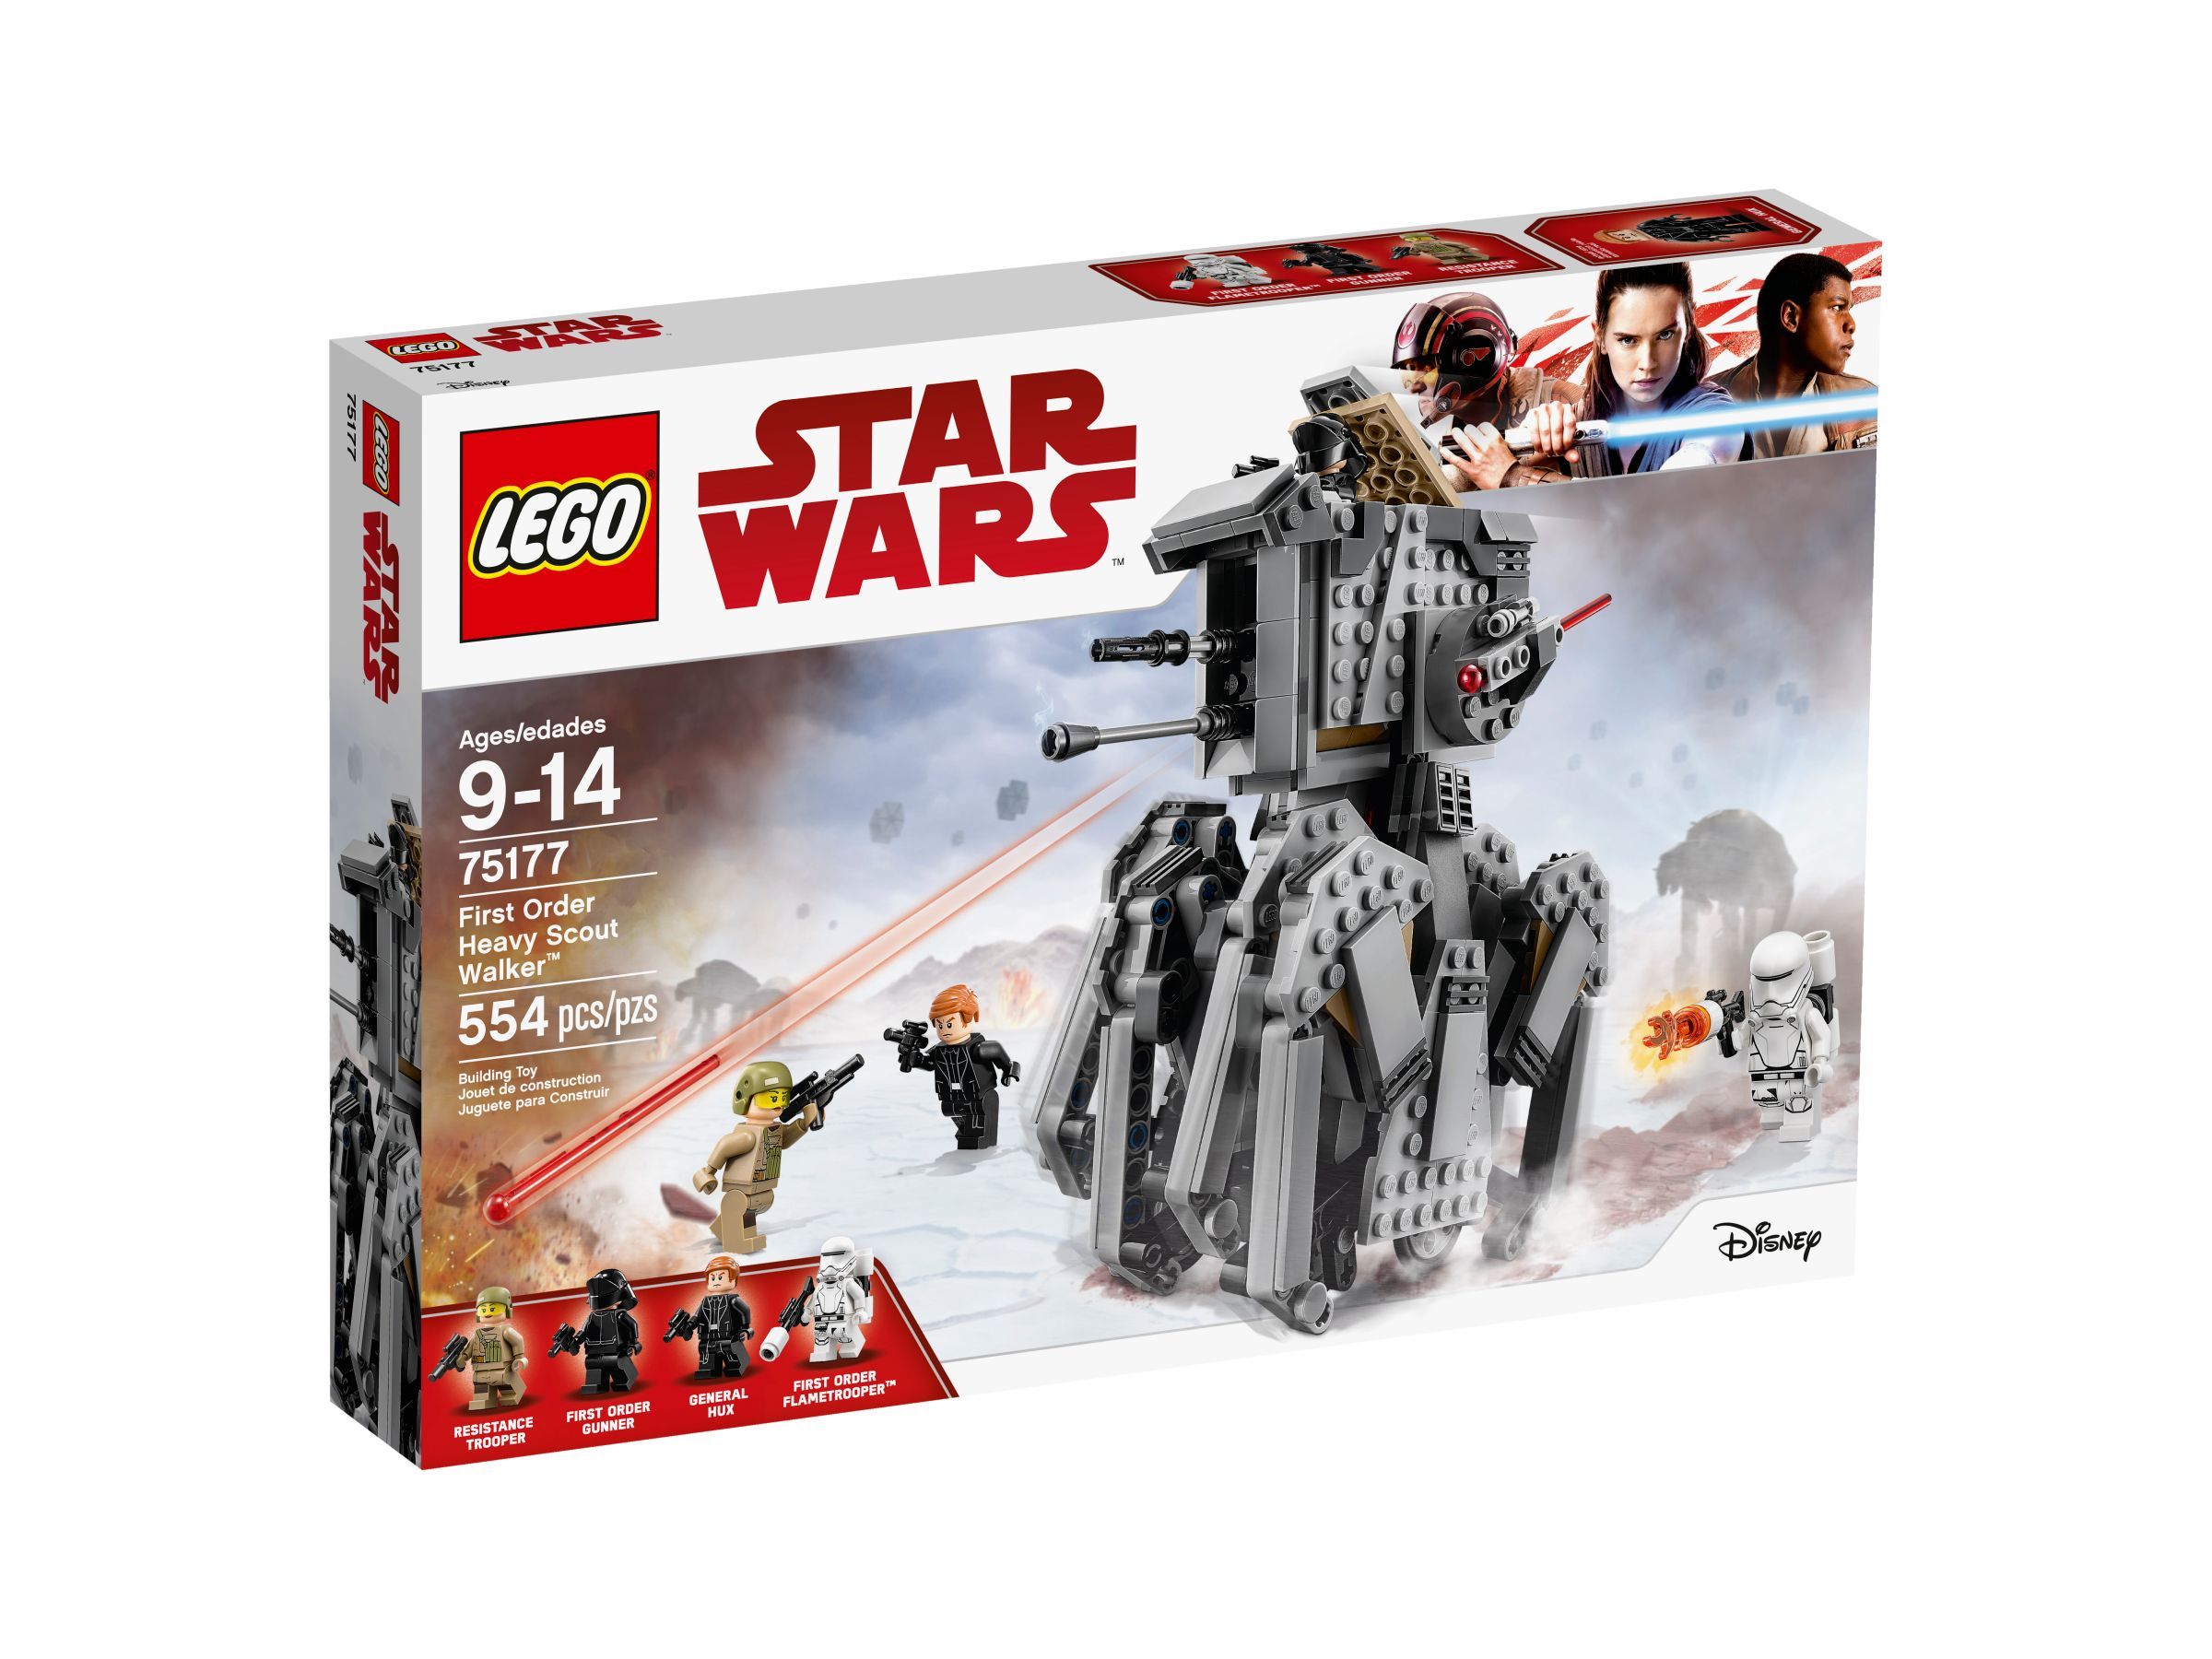 LEGO Star Wars 75177 First Order Heavy Scout Walker™ LEGO_75177_alt1.jpg